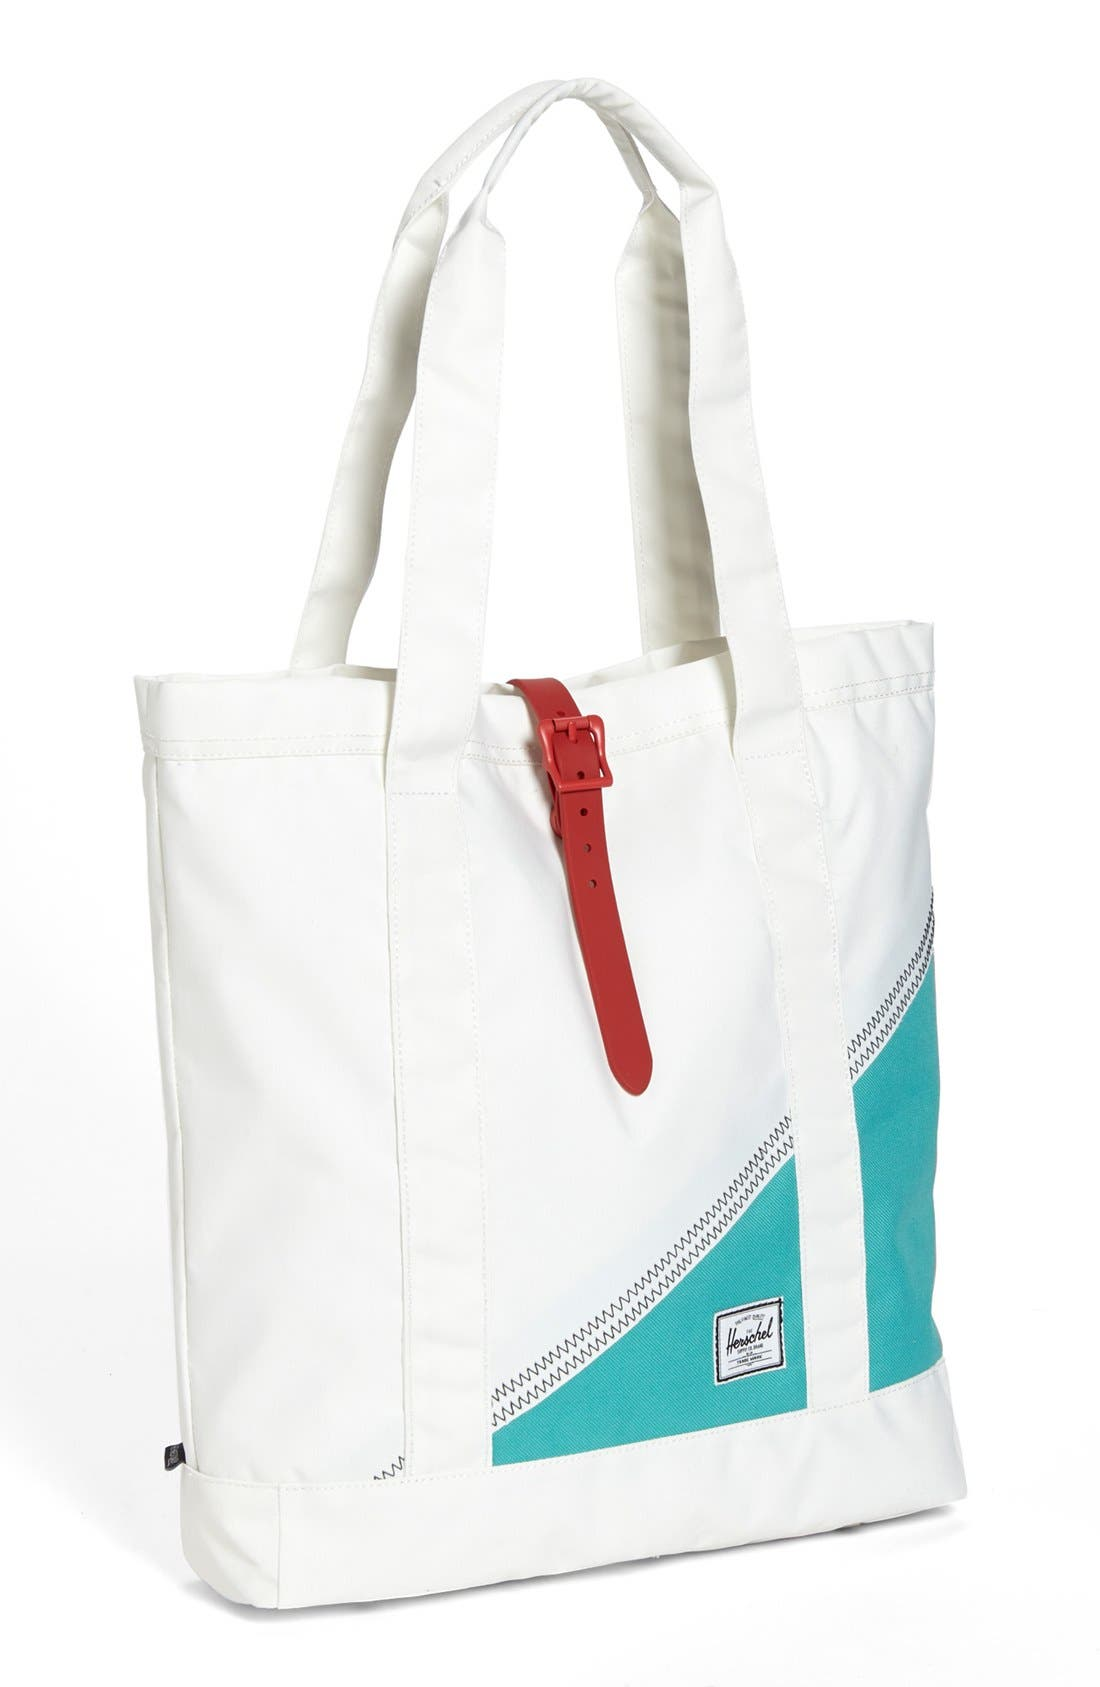 Alternate Image 1 Selected - Herschel Supply Co. 'Market - Studio Collection' Tote Bag